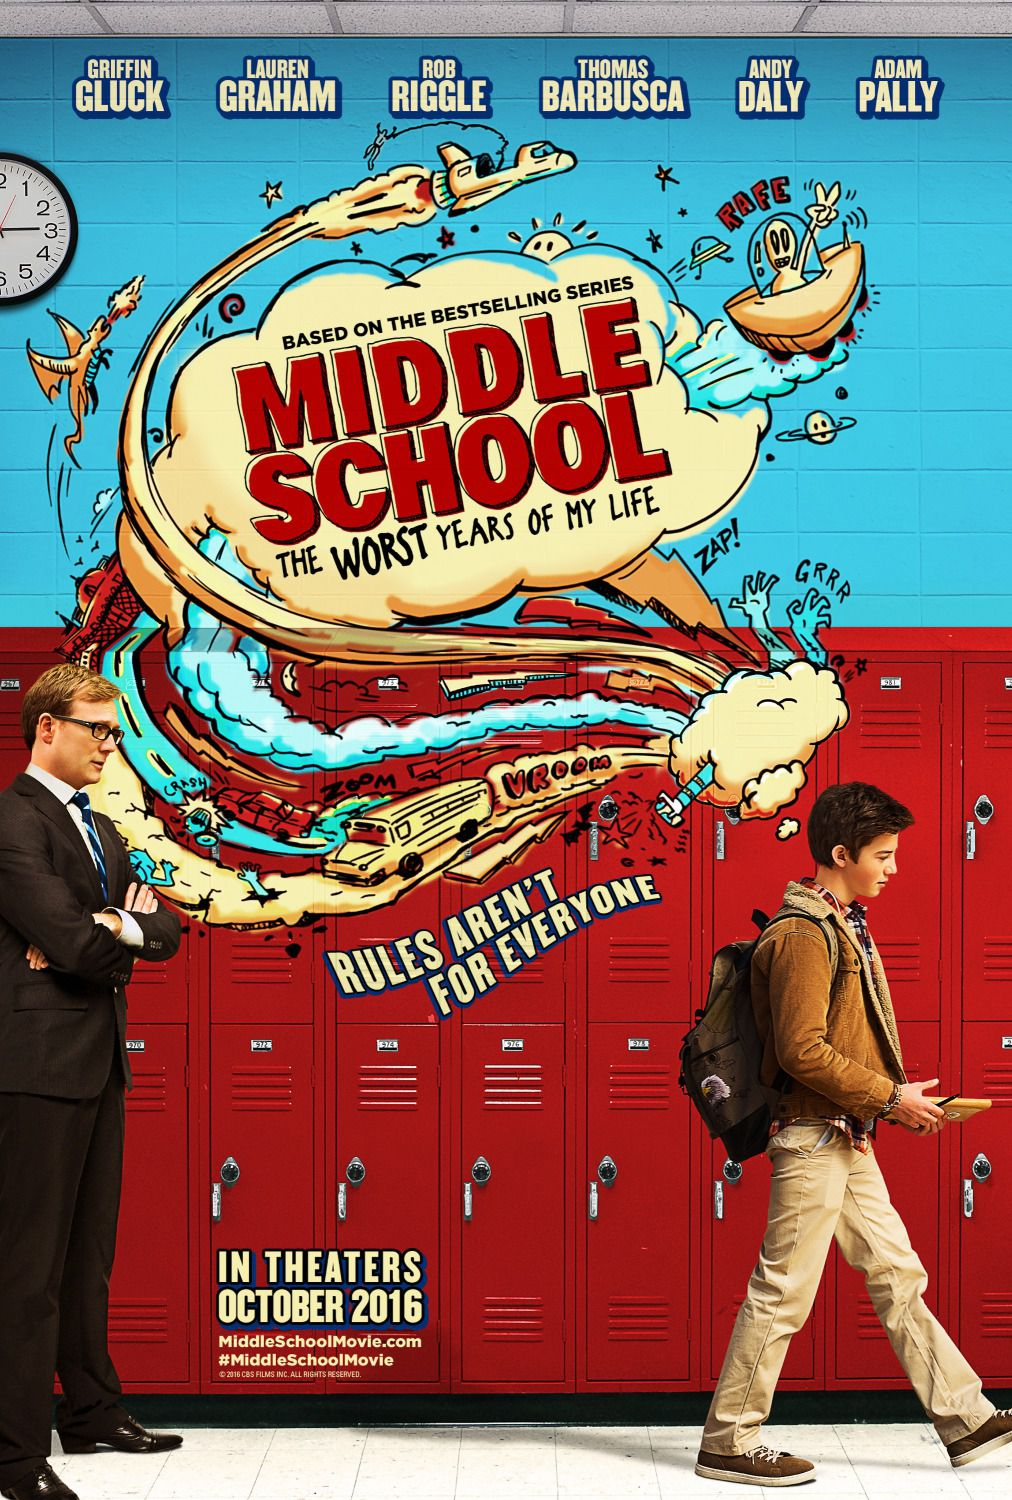 Middle School the worst years of my Life - Scuola - i peggiori anni della mia vita - Griffin Gluck - Lauren Graham . Rob Riggle - Thomas Barbusca -  Andy Daly - Adam Pally - Comedy Film Poster - Based on the Bestselling series ... rules aren't for everyone